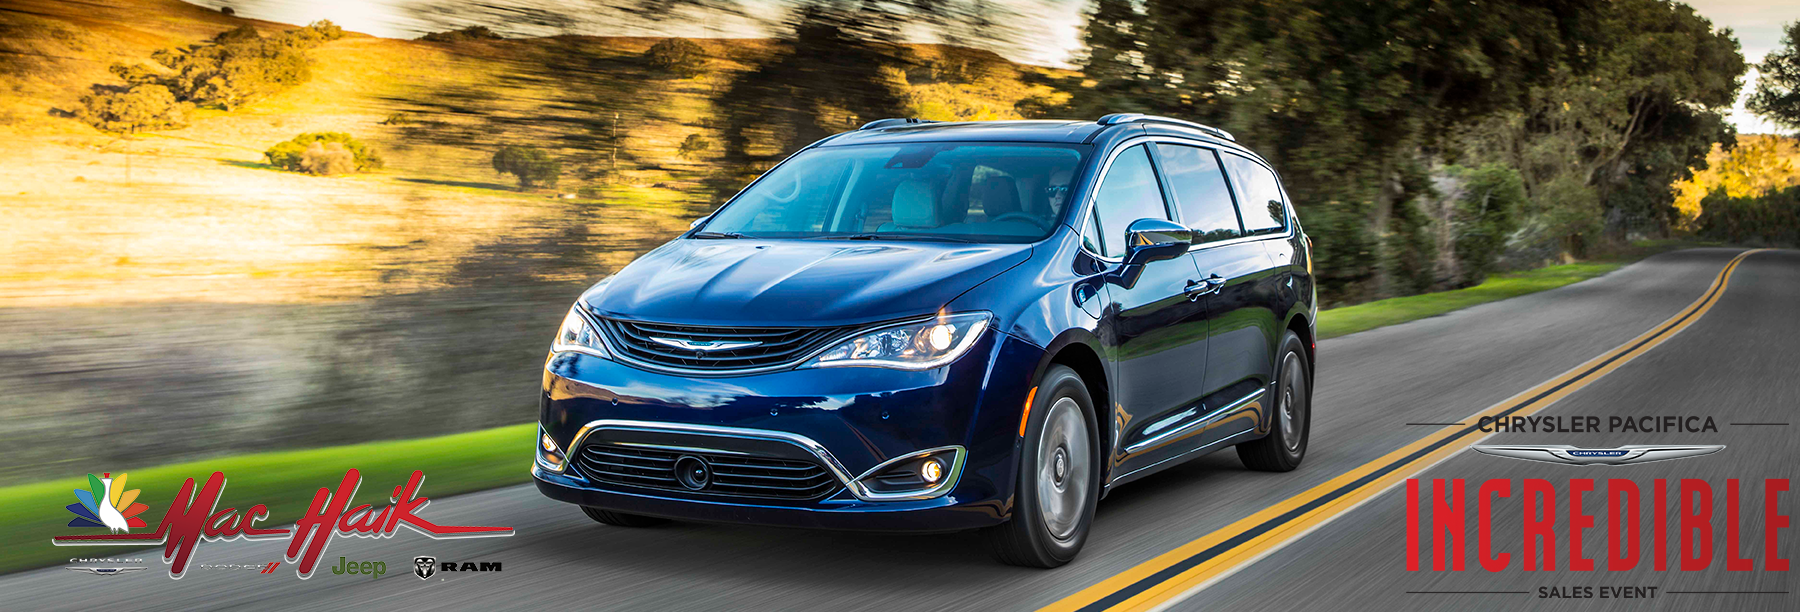 Chrysler Pacifica INCREDIBLE Sales Event at Mac Haik of Georgetown